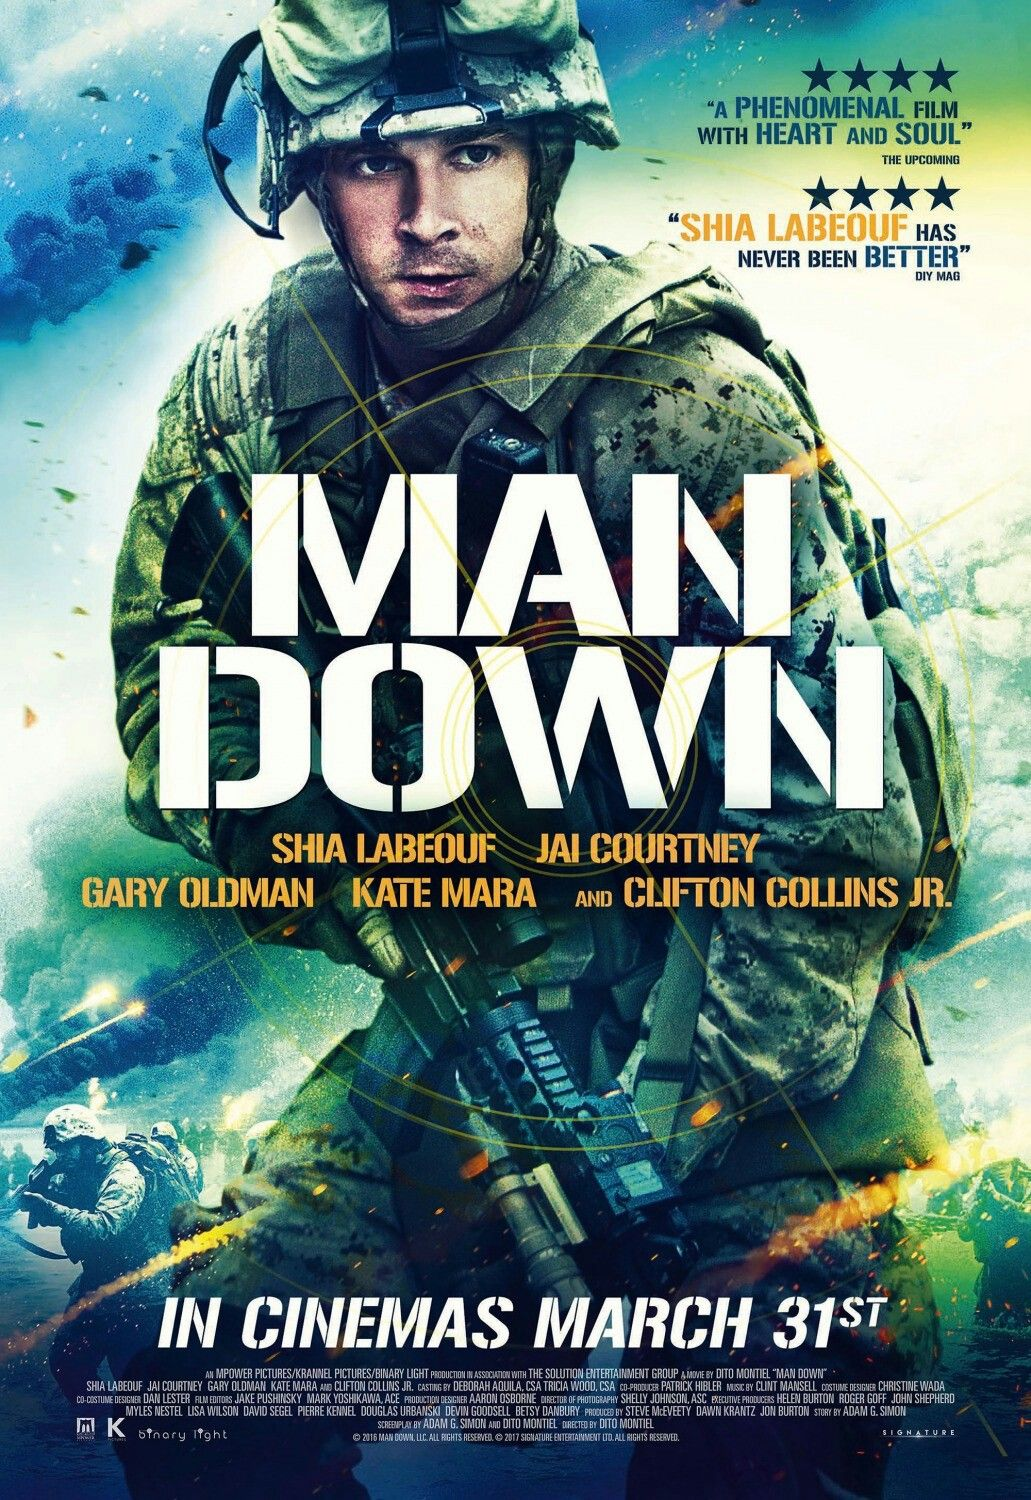 Man Down Man down, Shia labeouf, English movies